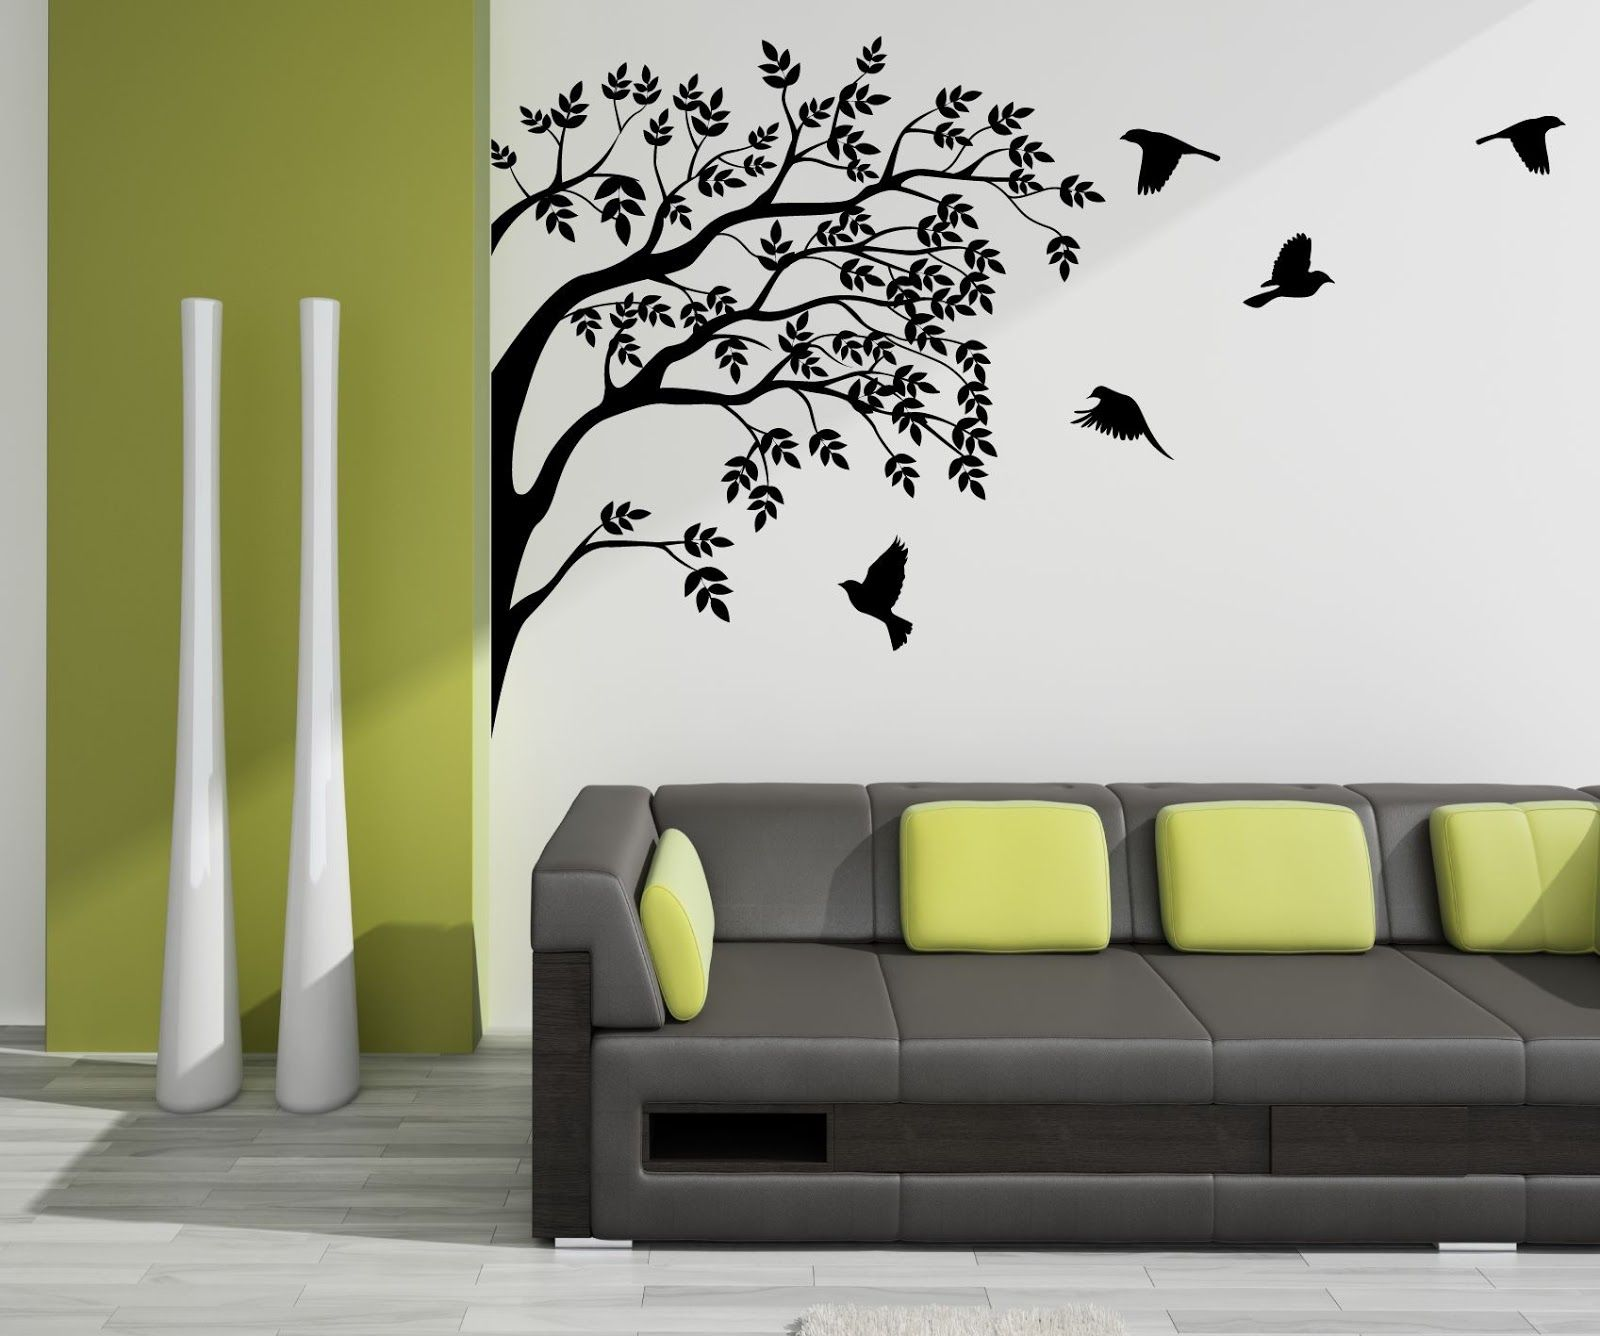 Design Wall Decals office : awesome smart home office design ideas, elegant design